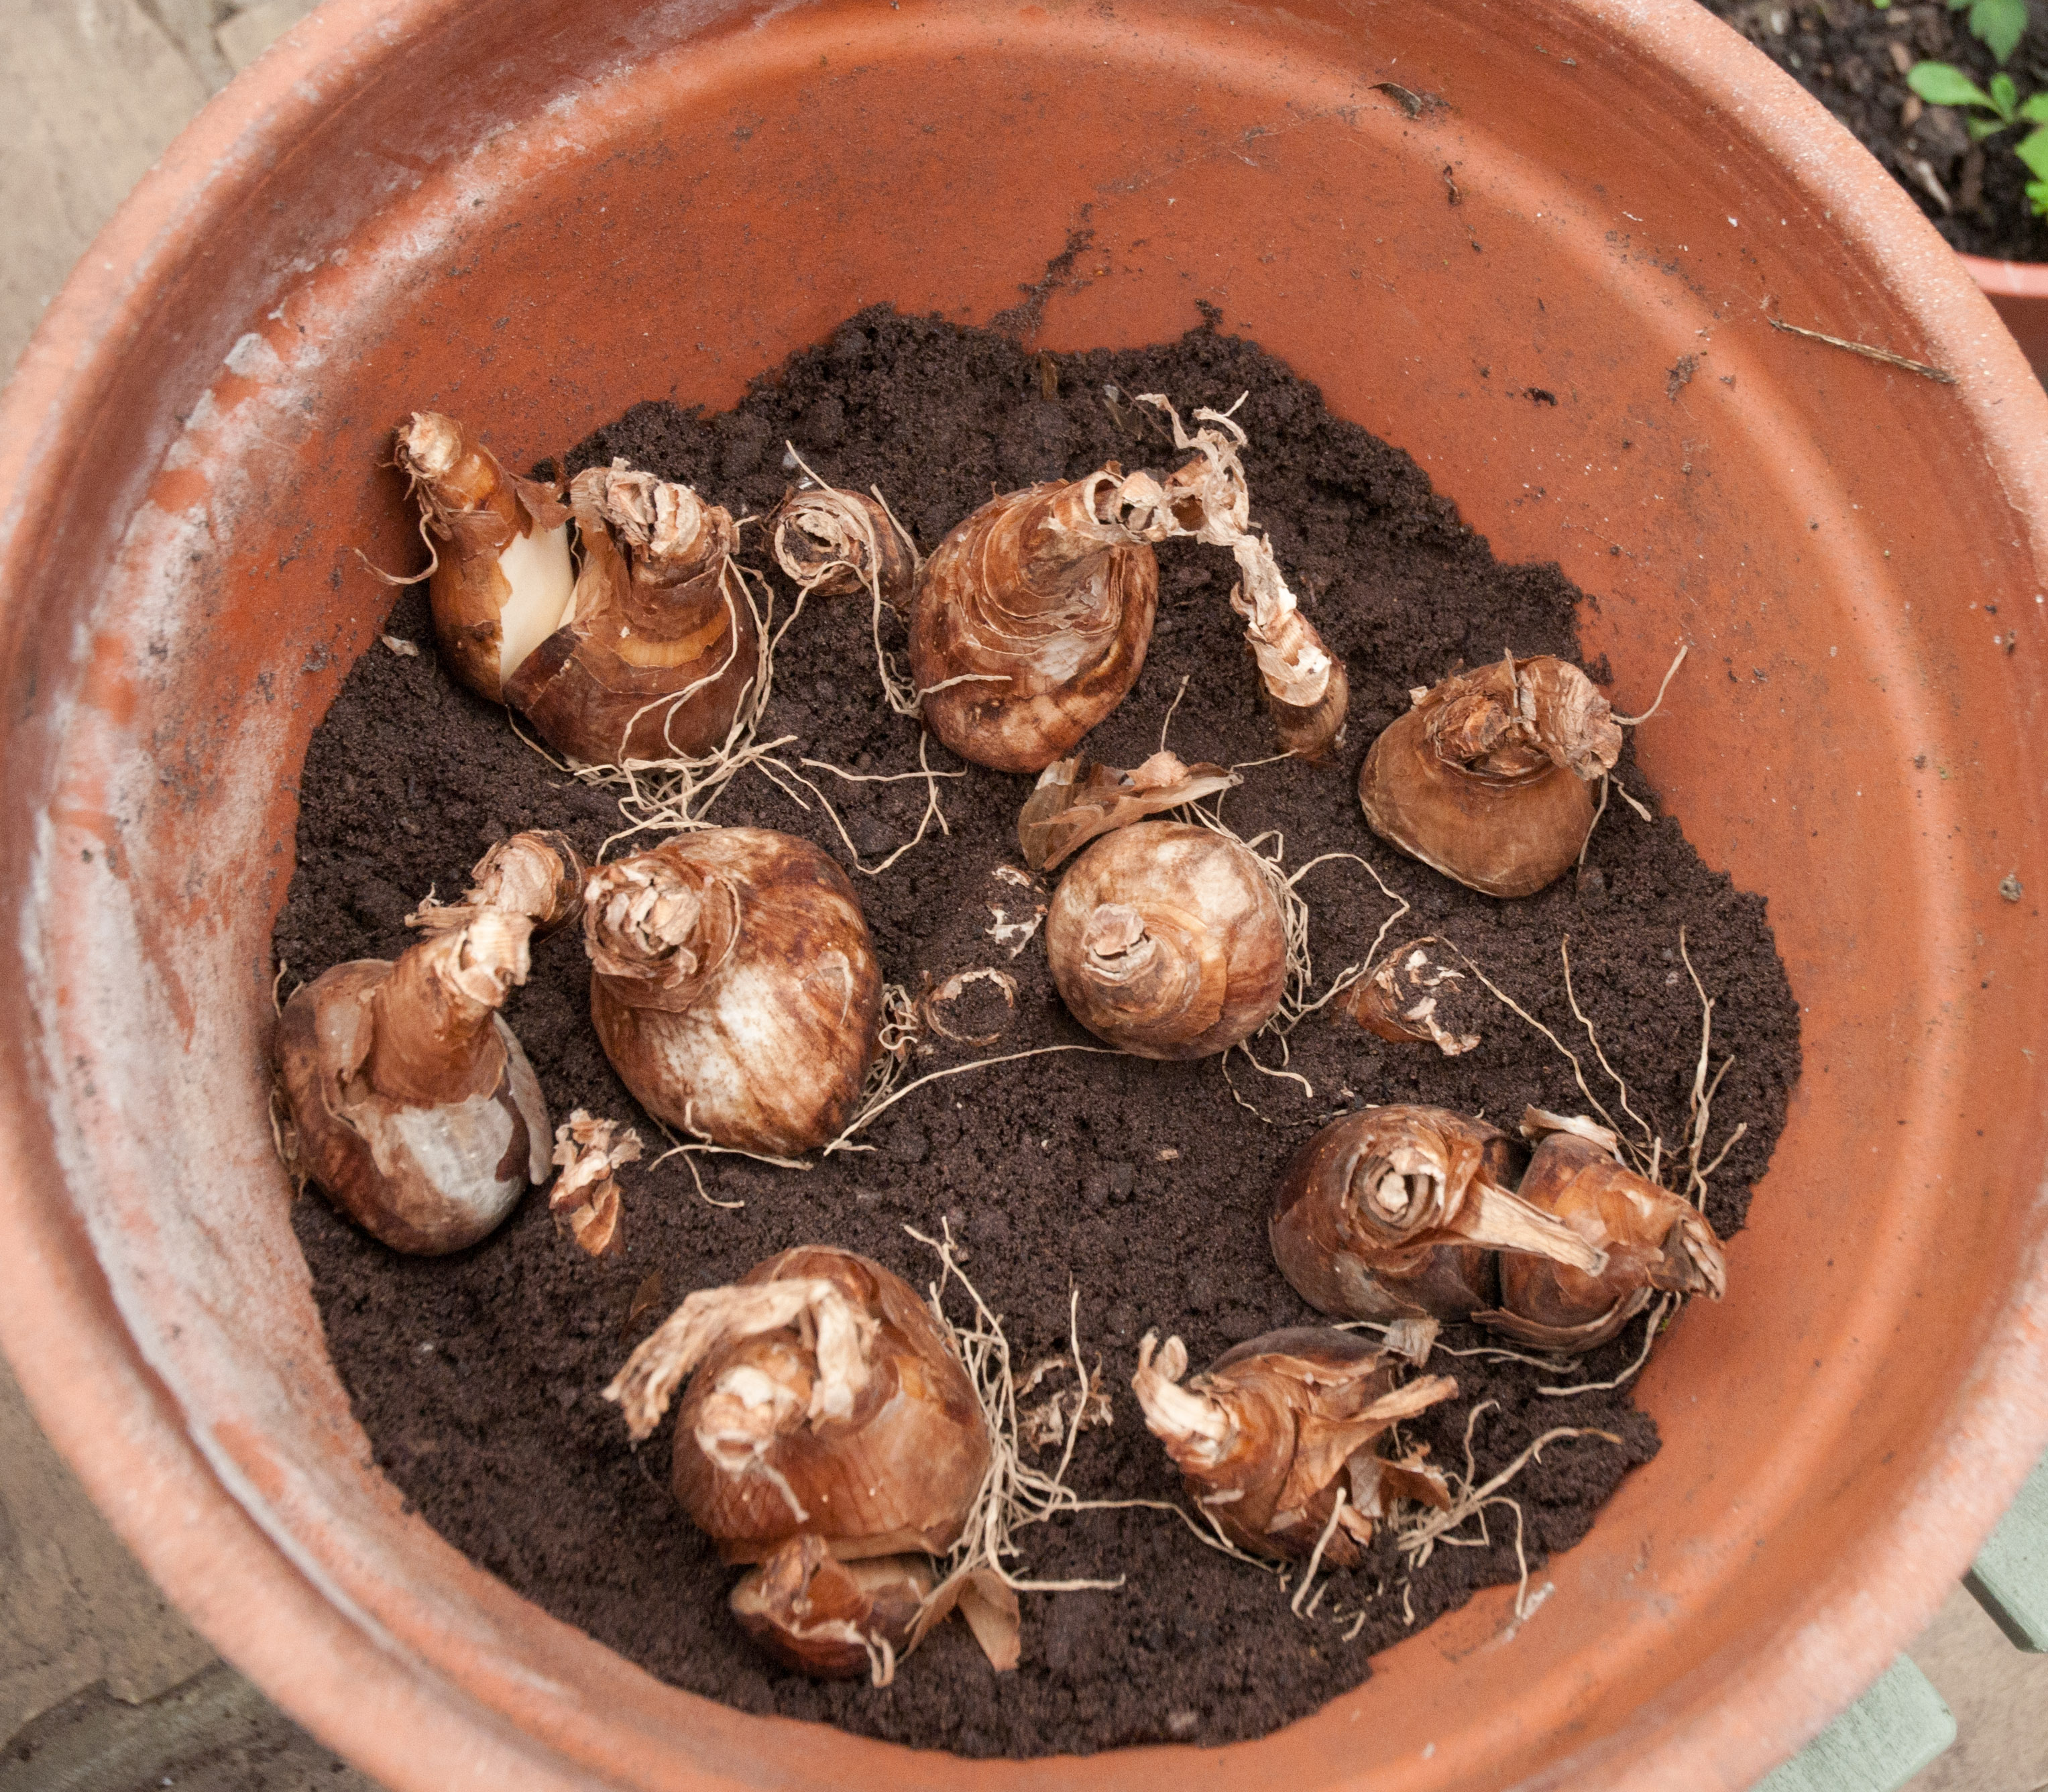 When how to plant daffodil bulbs - Next